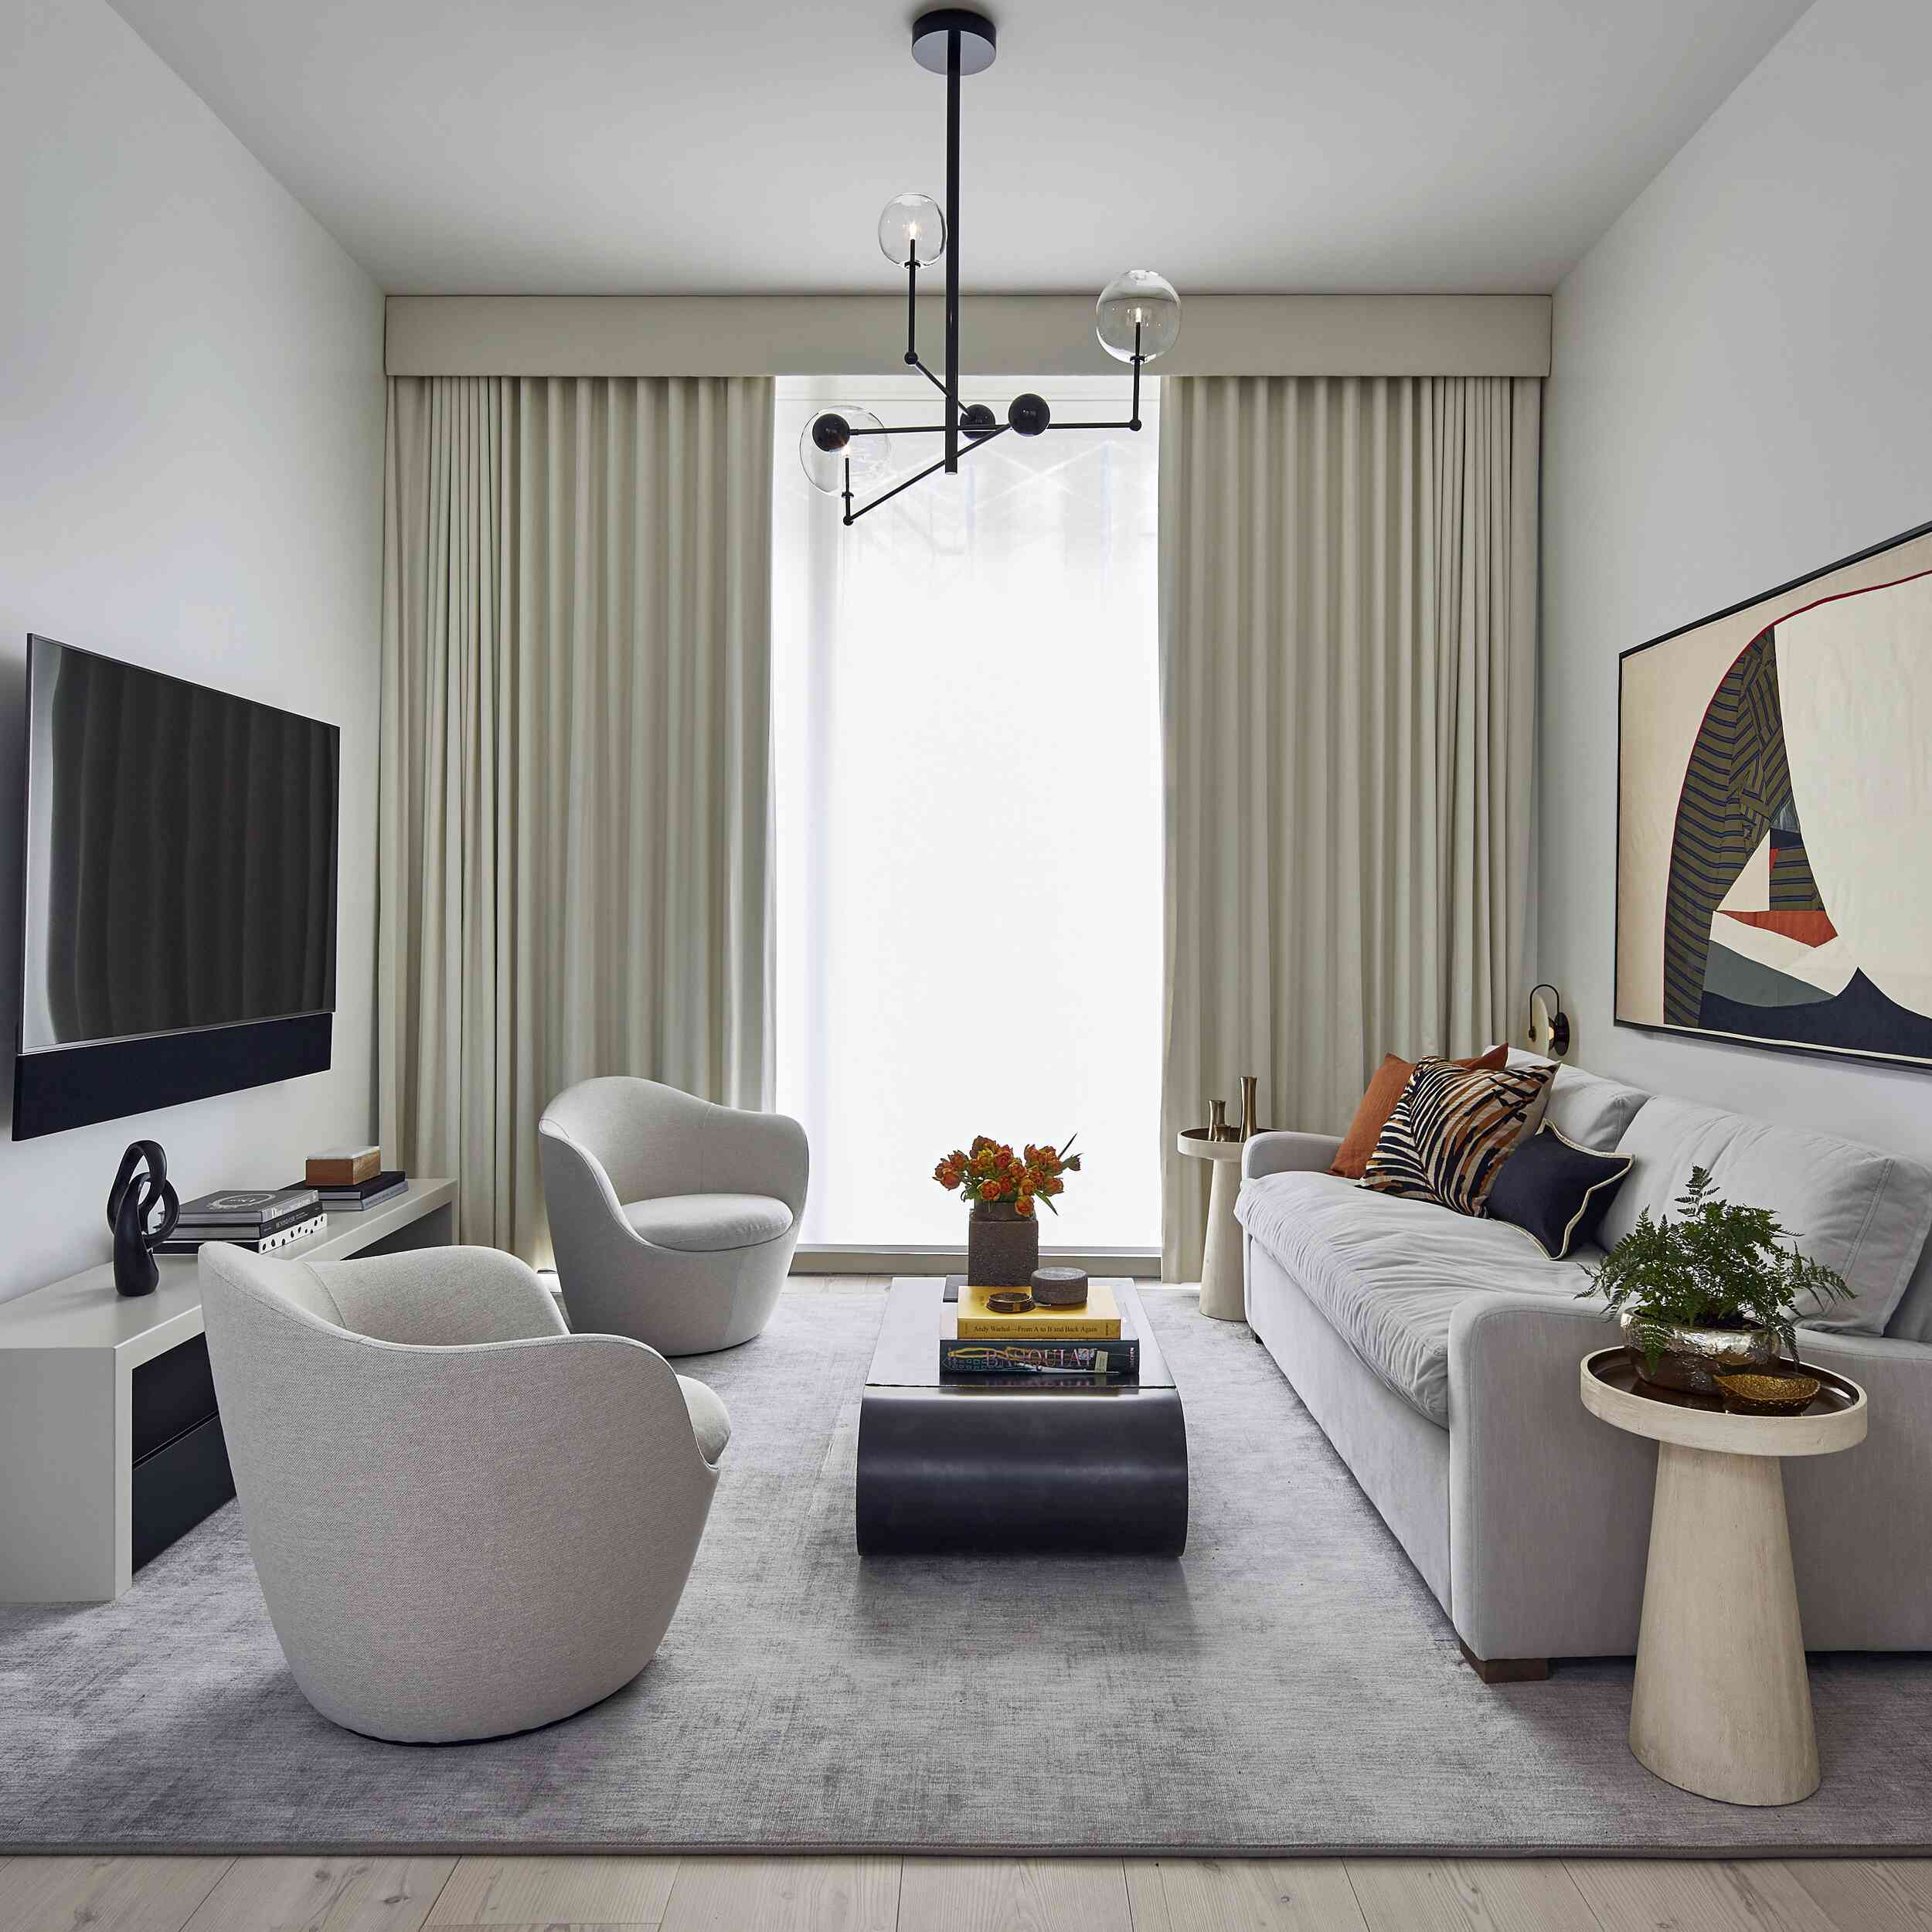 Modern luxe apartment living room with large drapes.